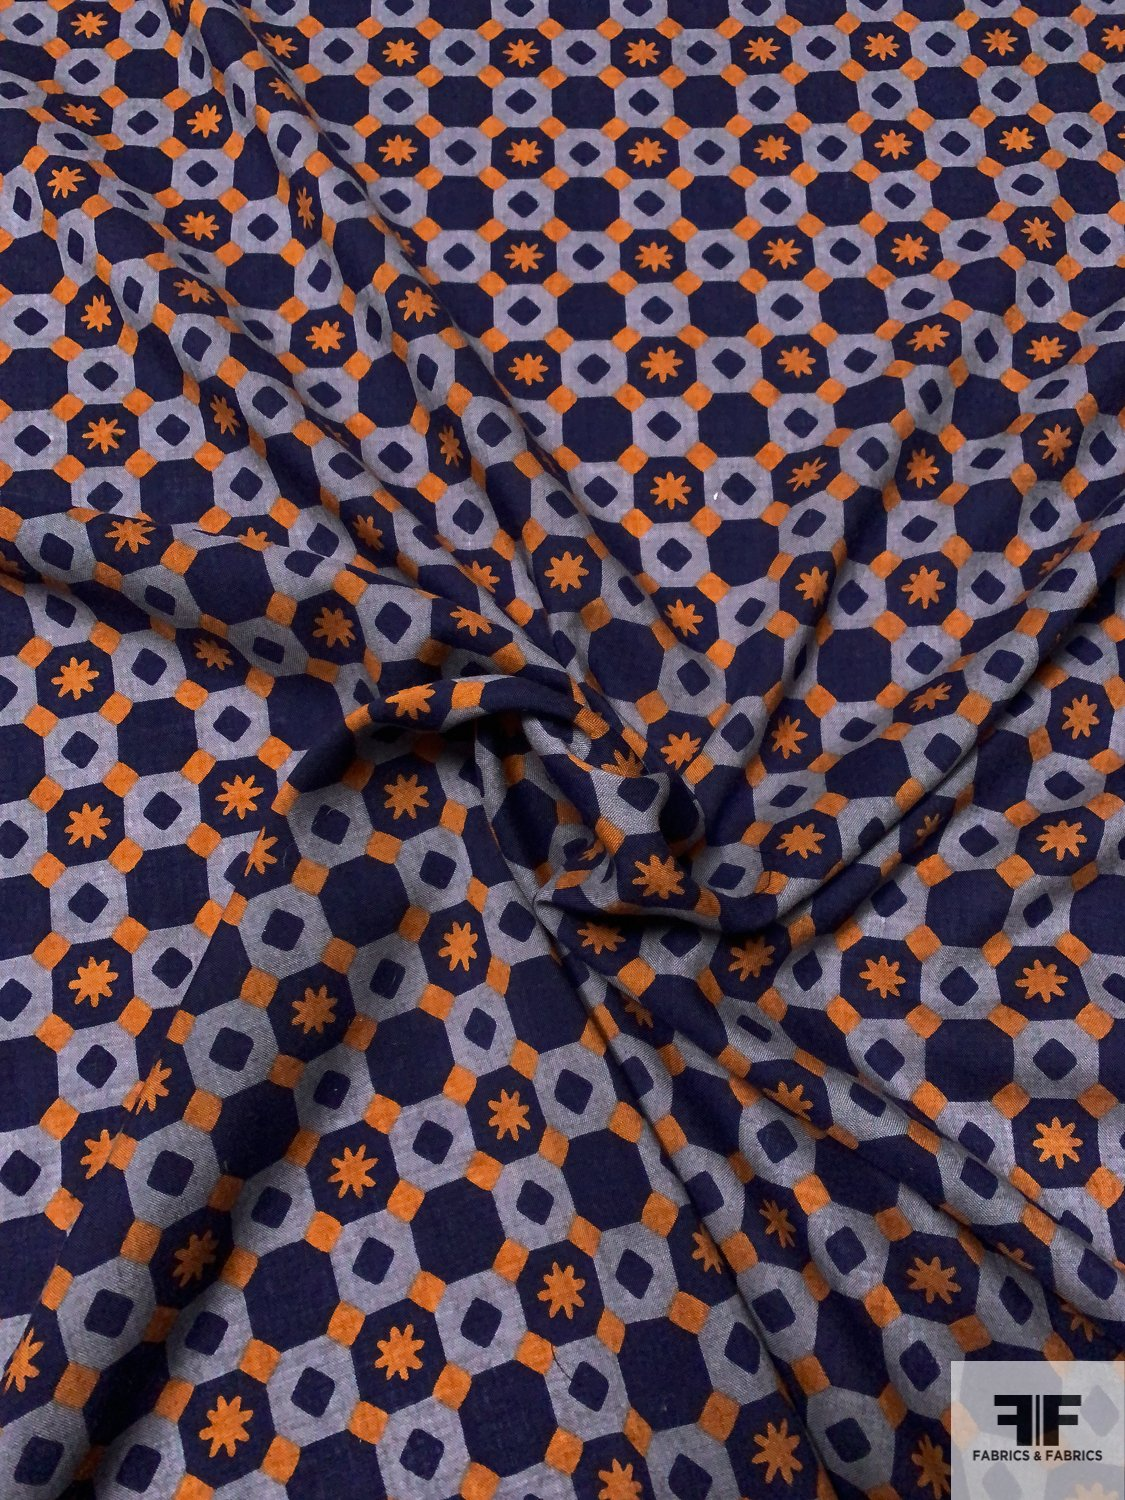 Art Deco Checkerboard Printed Wool Challis - Navy / Powder Blue / Ginger Orange